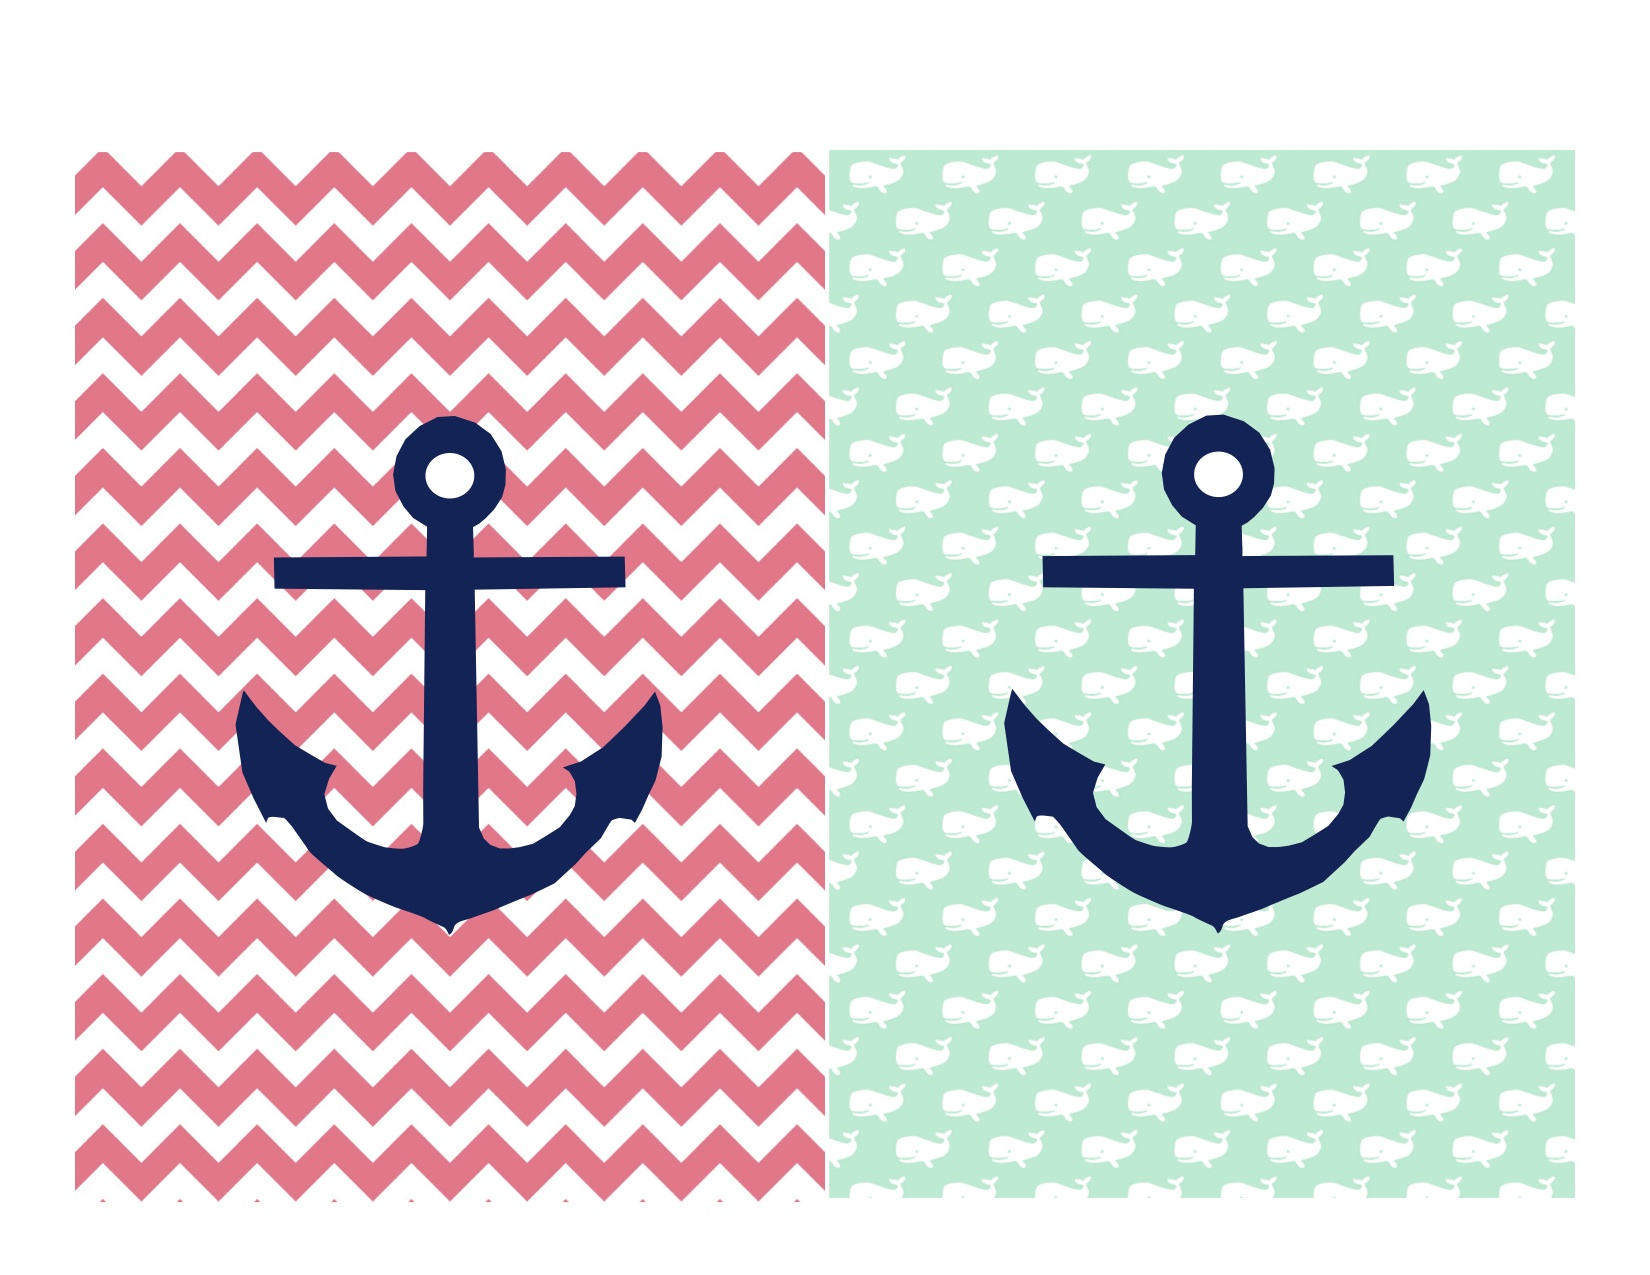 Anchor iphone wallpaper tumblr - Displaying 20 Images For Chevron Anchor Background